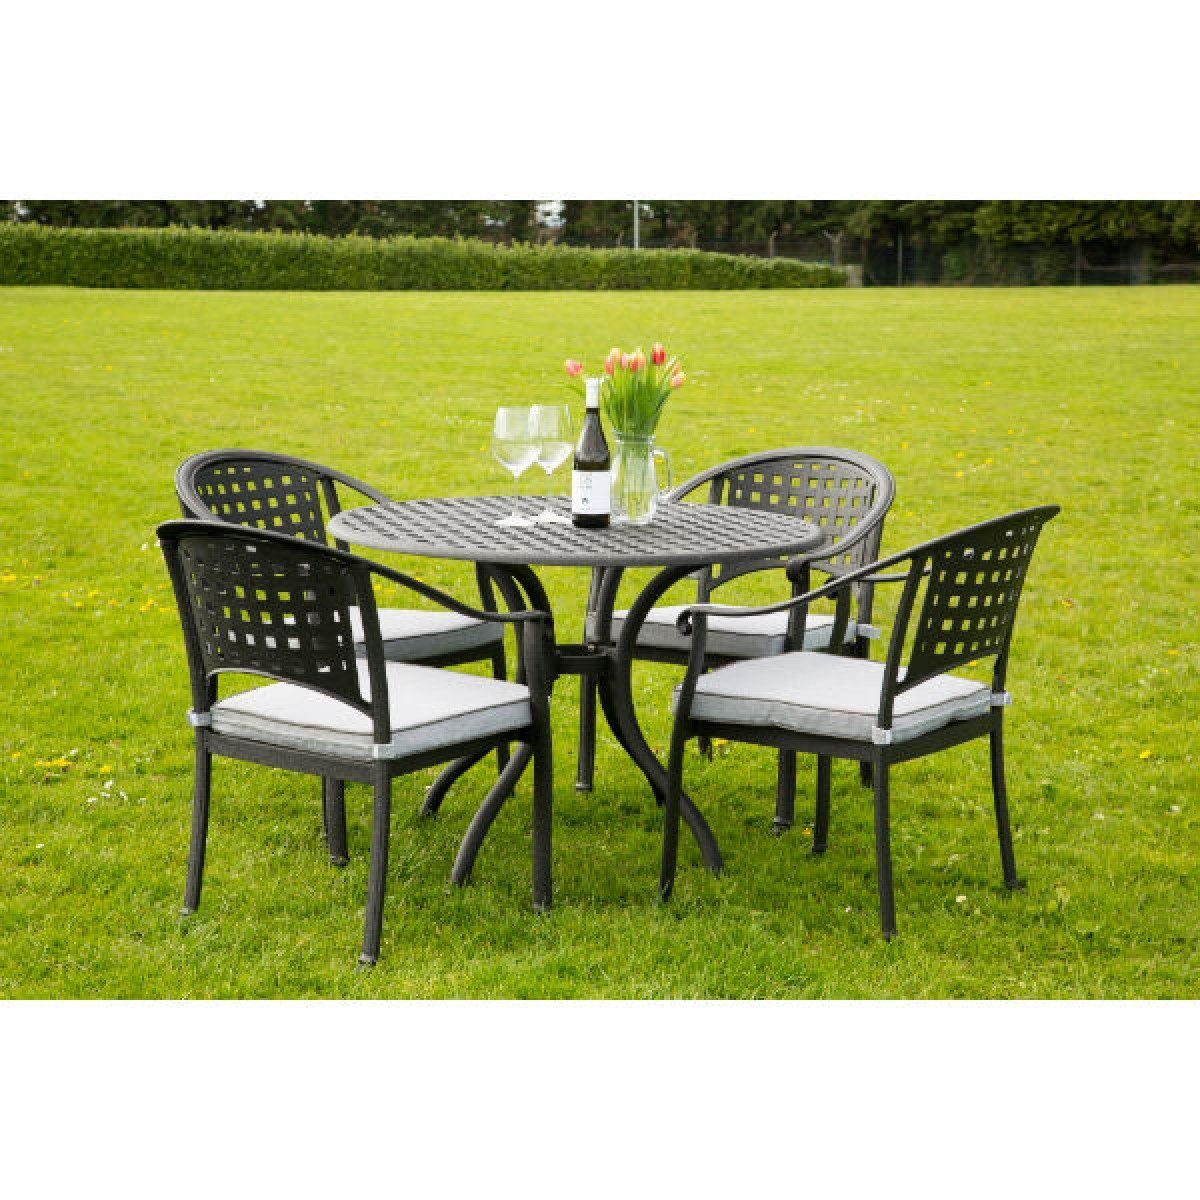 4 seater outdoor table and chairs wing chair recliner slipcover pattern chelmsford cast aluminium garden furniture set